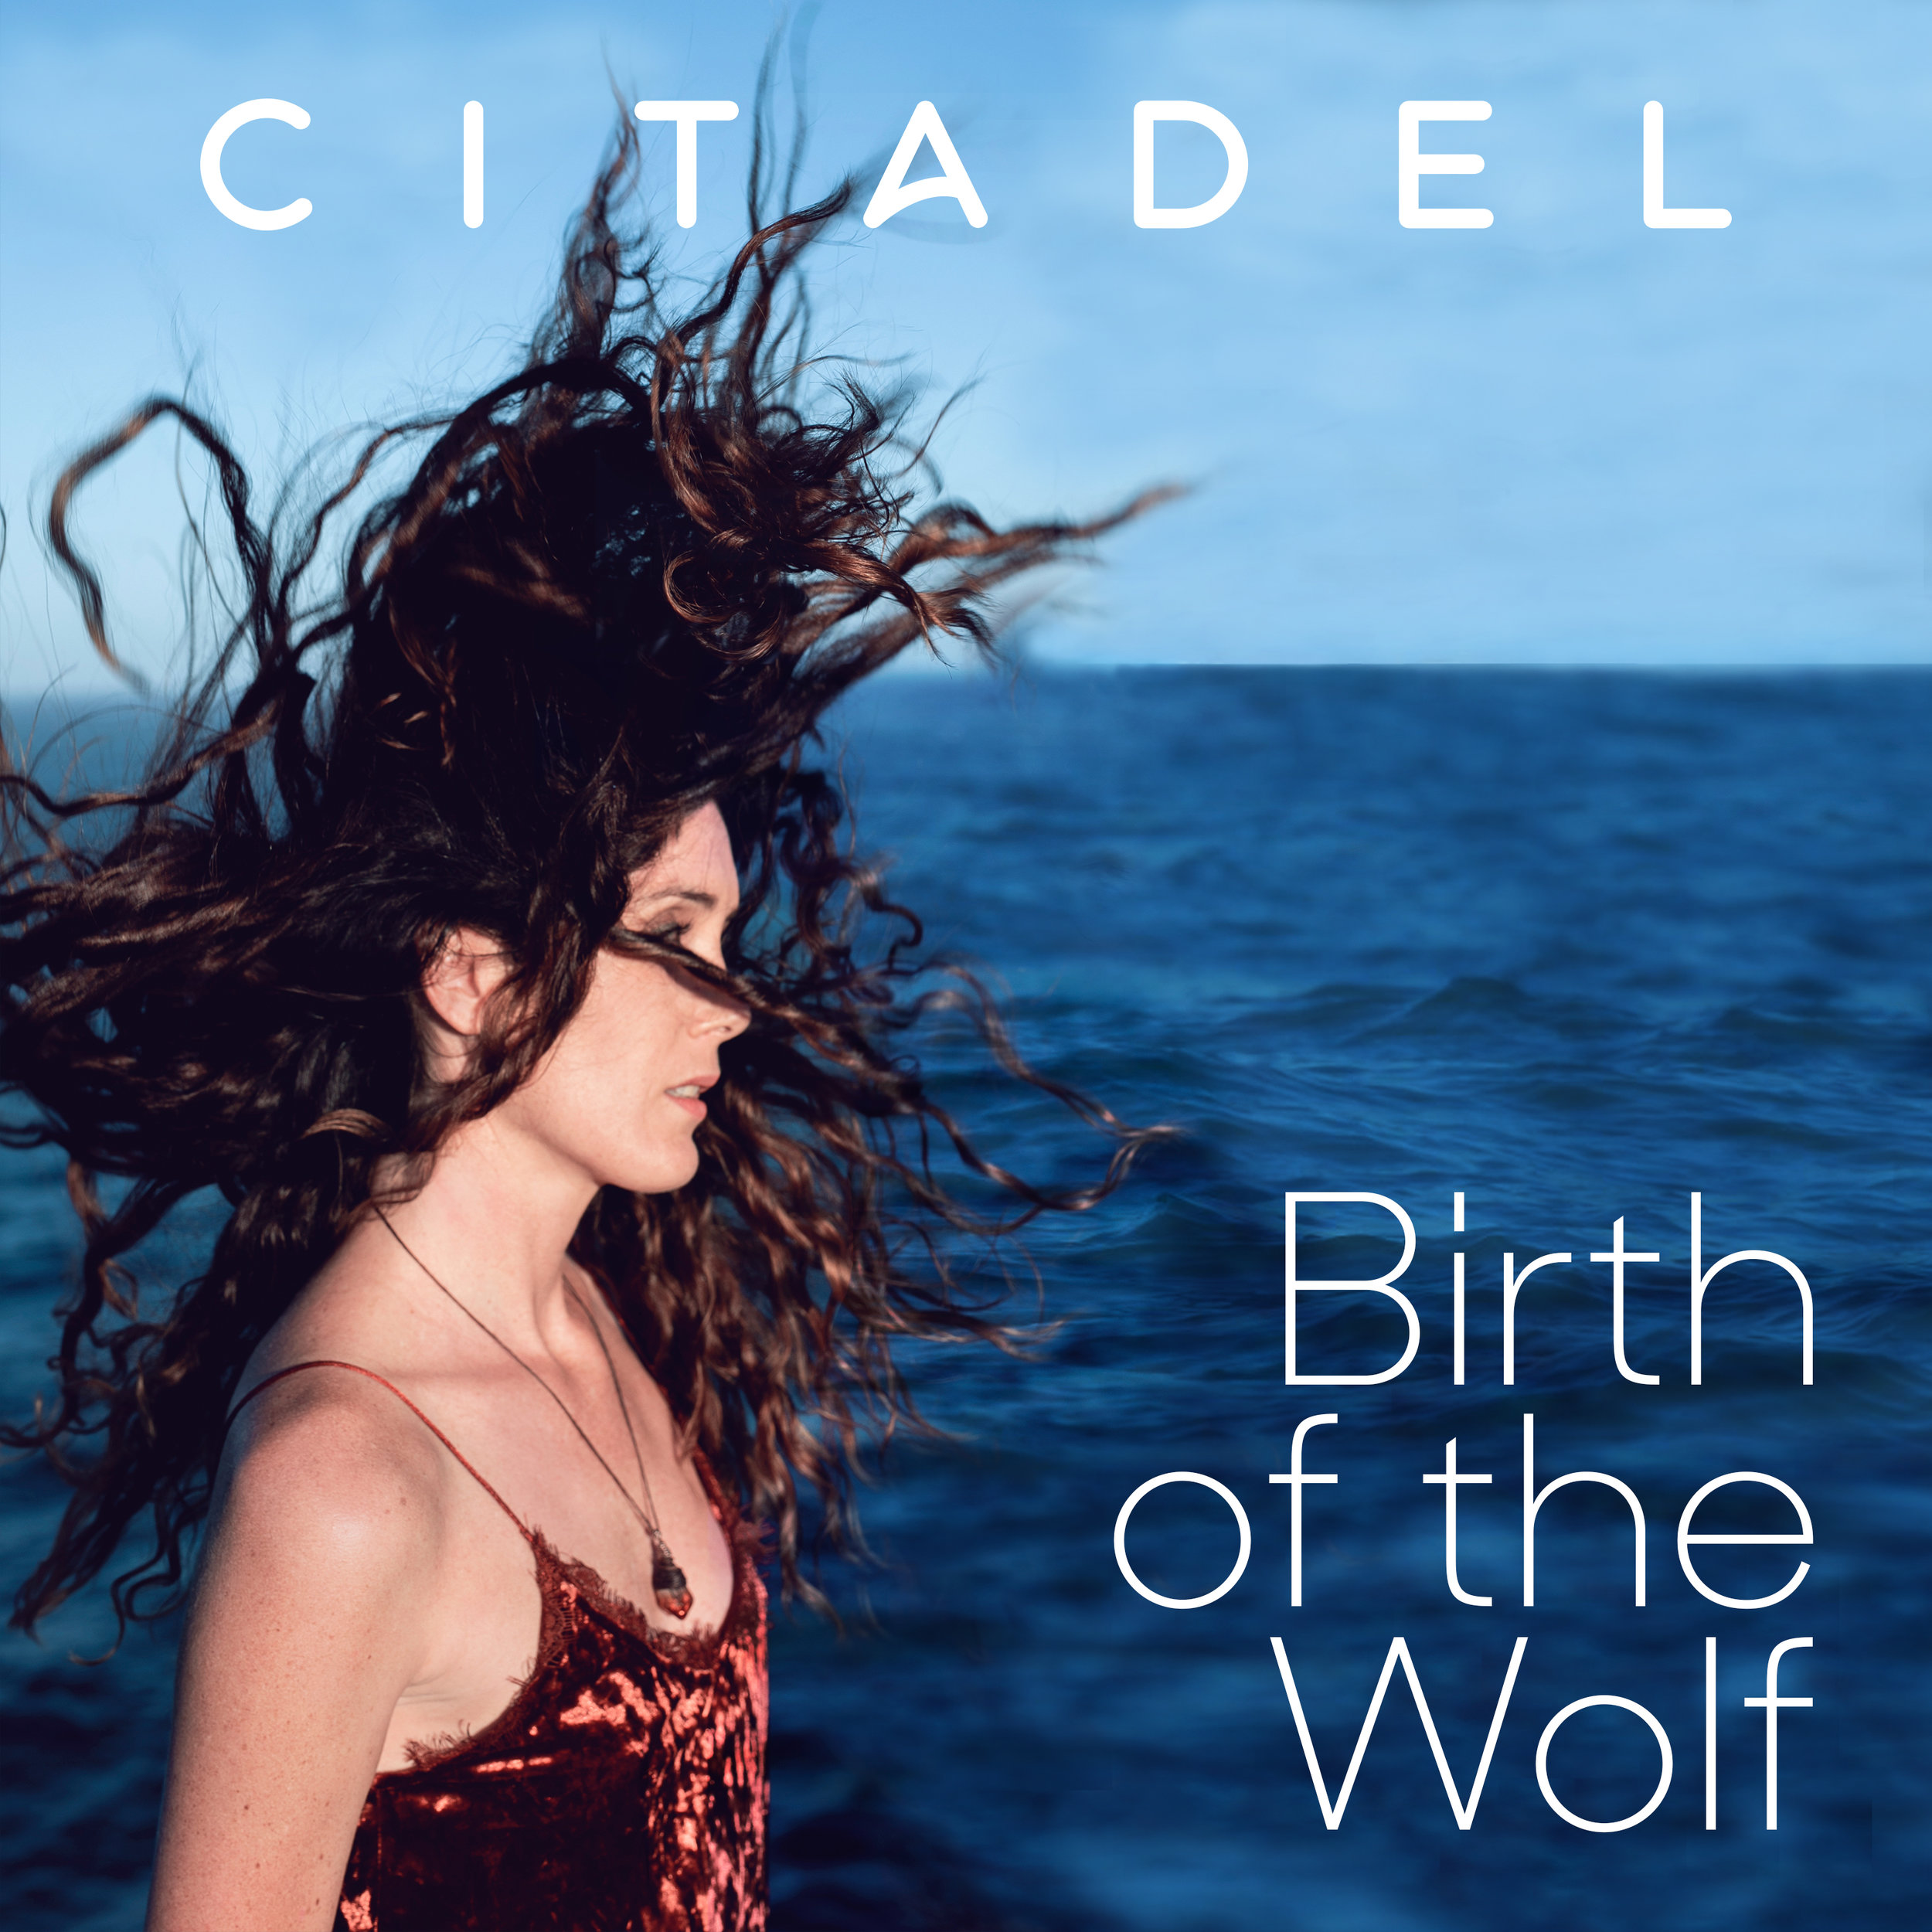 Birth Of The Wolf - 1. Birth Of The Wolf2.The Witness3. Divine Feminine4.Feel It All5. Fire Of Kali6. The Other Side7. Everybody's Free8. Shadow9. Version 2.010. Only Time11. Earth12. Put Out Fire13. Woken UpBuy on iTunesStream on Spotify